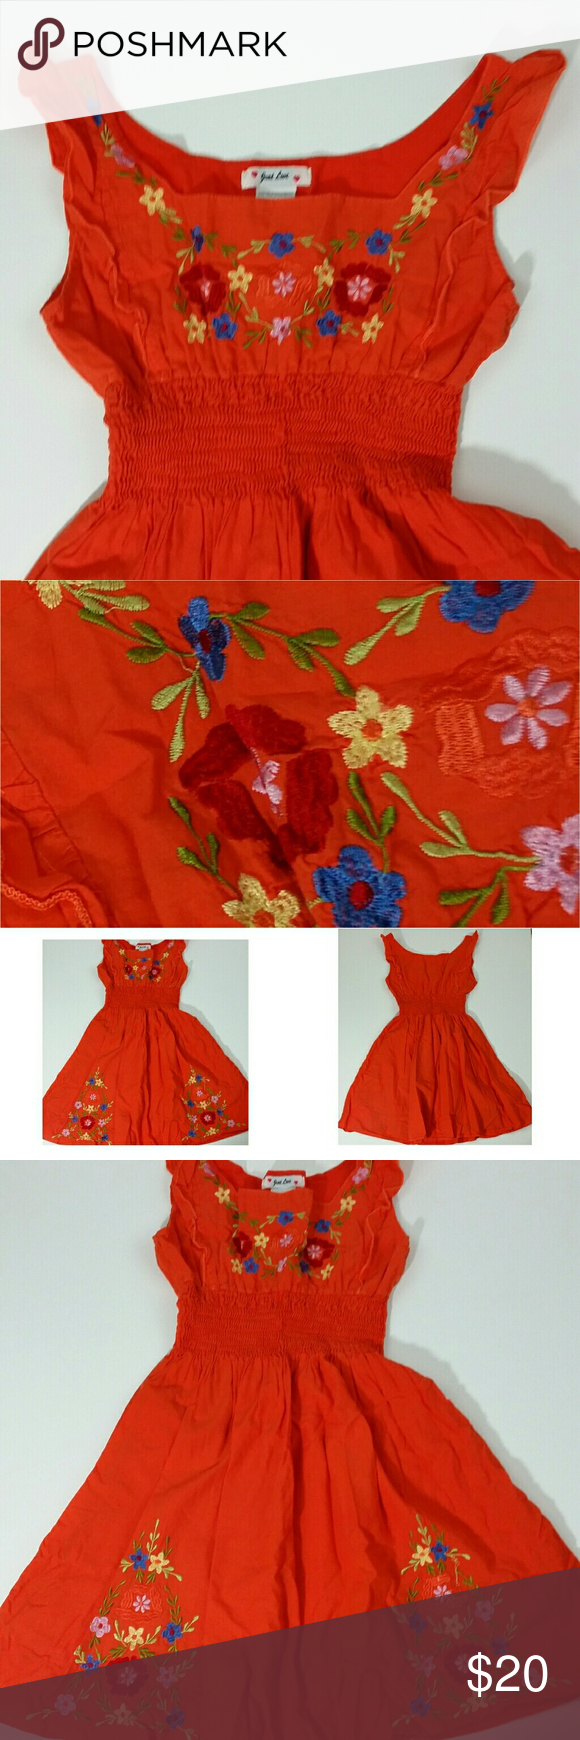 JUST LOVE Boho Embroidered Dress JUST LOVE Womens Large L/12/14 Boho Floral Embroidered Sundress Dress Orange Lined  Gently used, minor flaw barely noticeable, see last photo. Overall still in Great Condition.  See photos for measurements.  Thanks,  Item:  F12 Just Love Dresses